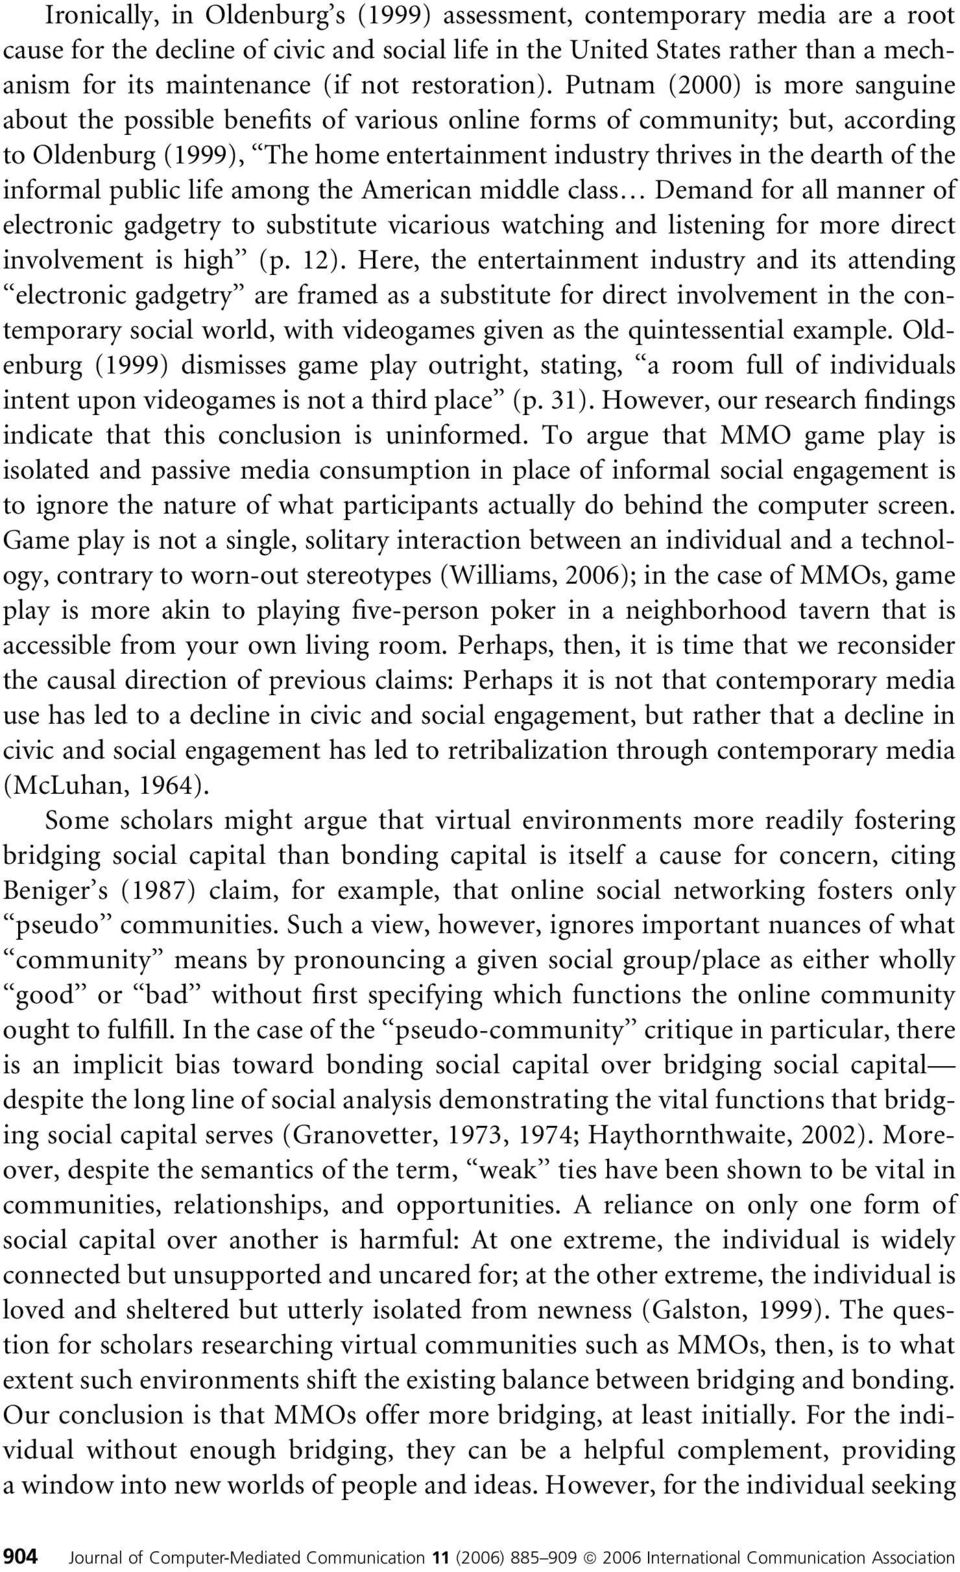 Putnam (2000) is more sanguine about the possible benefits of various online forms of community; but, according to Oldenburg (1999), The home entertainment industry thrives in the dearth of the